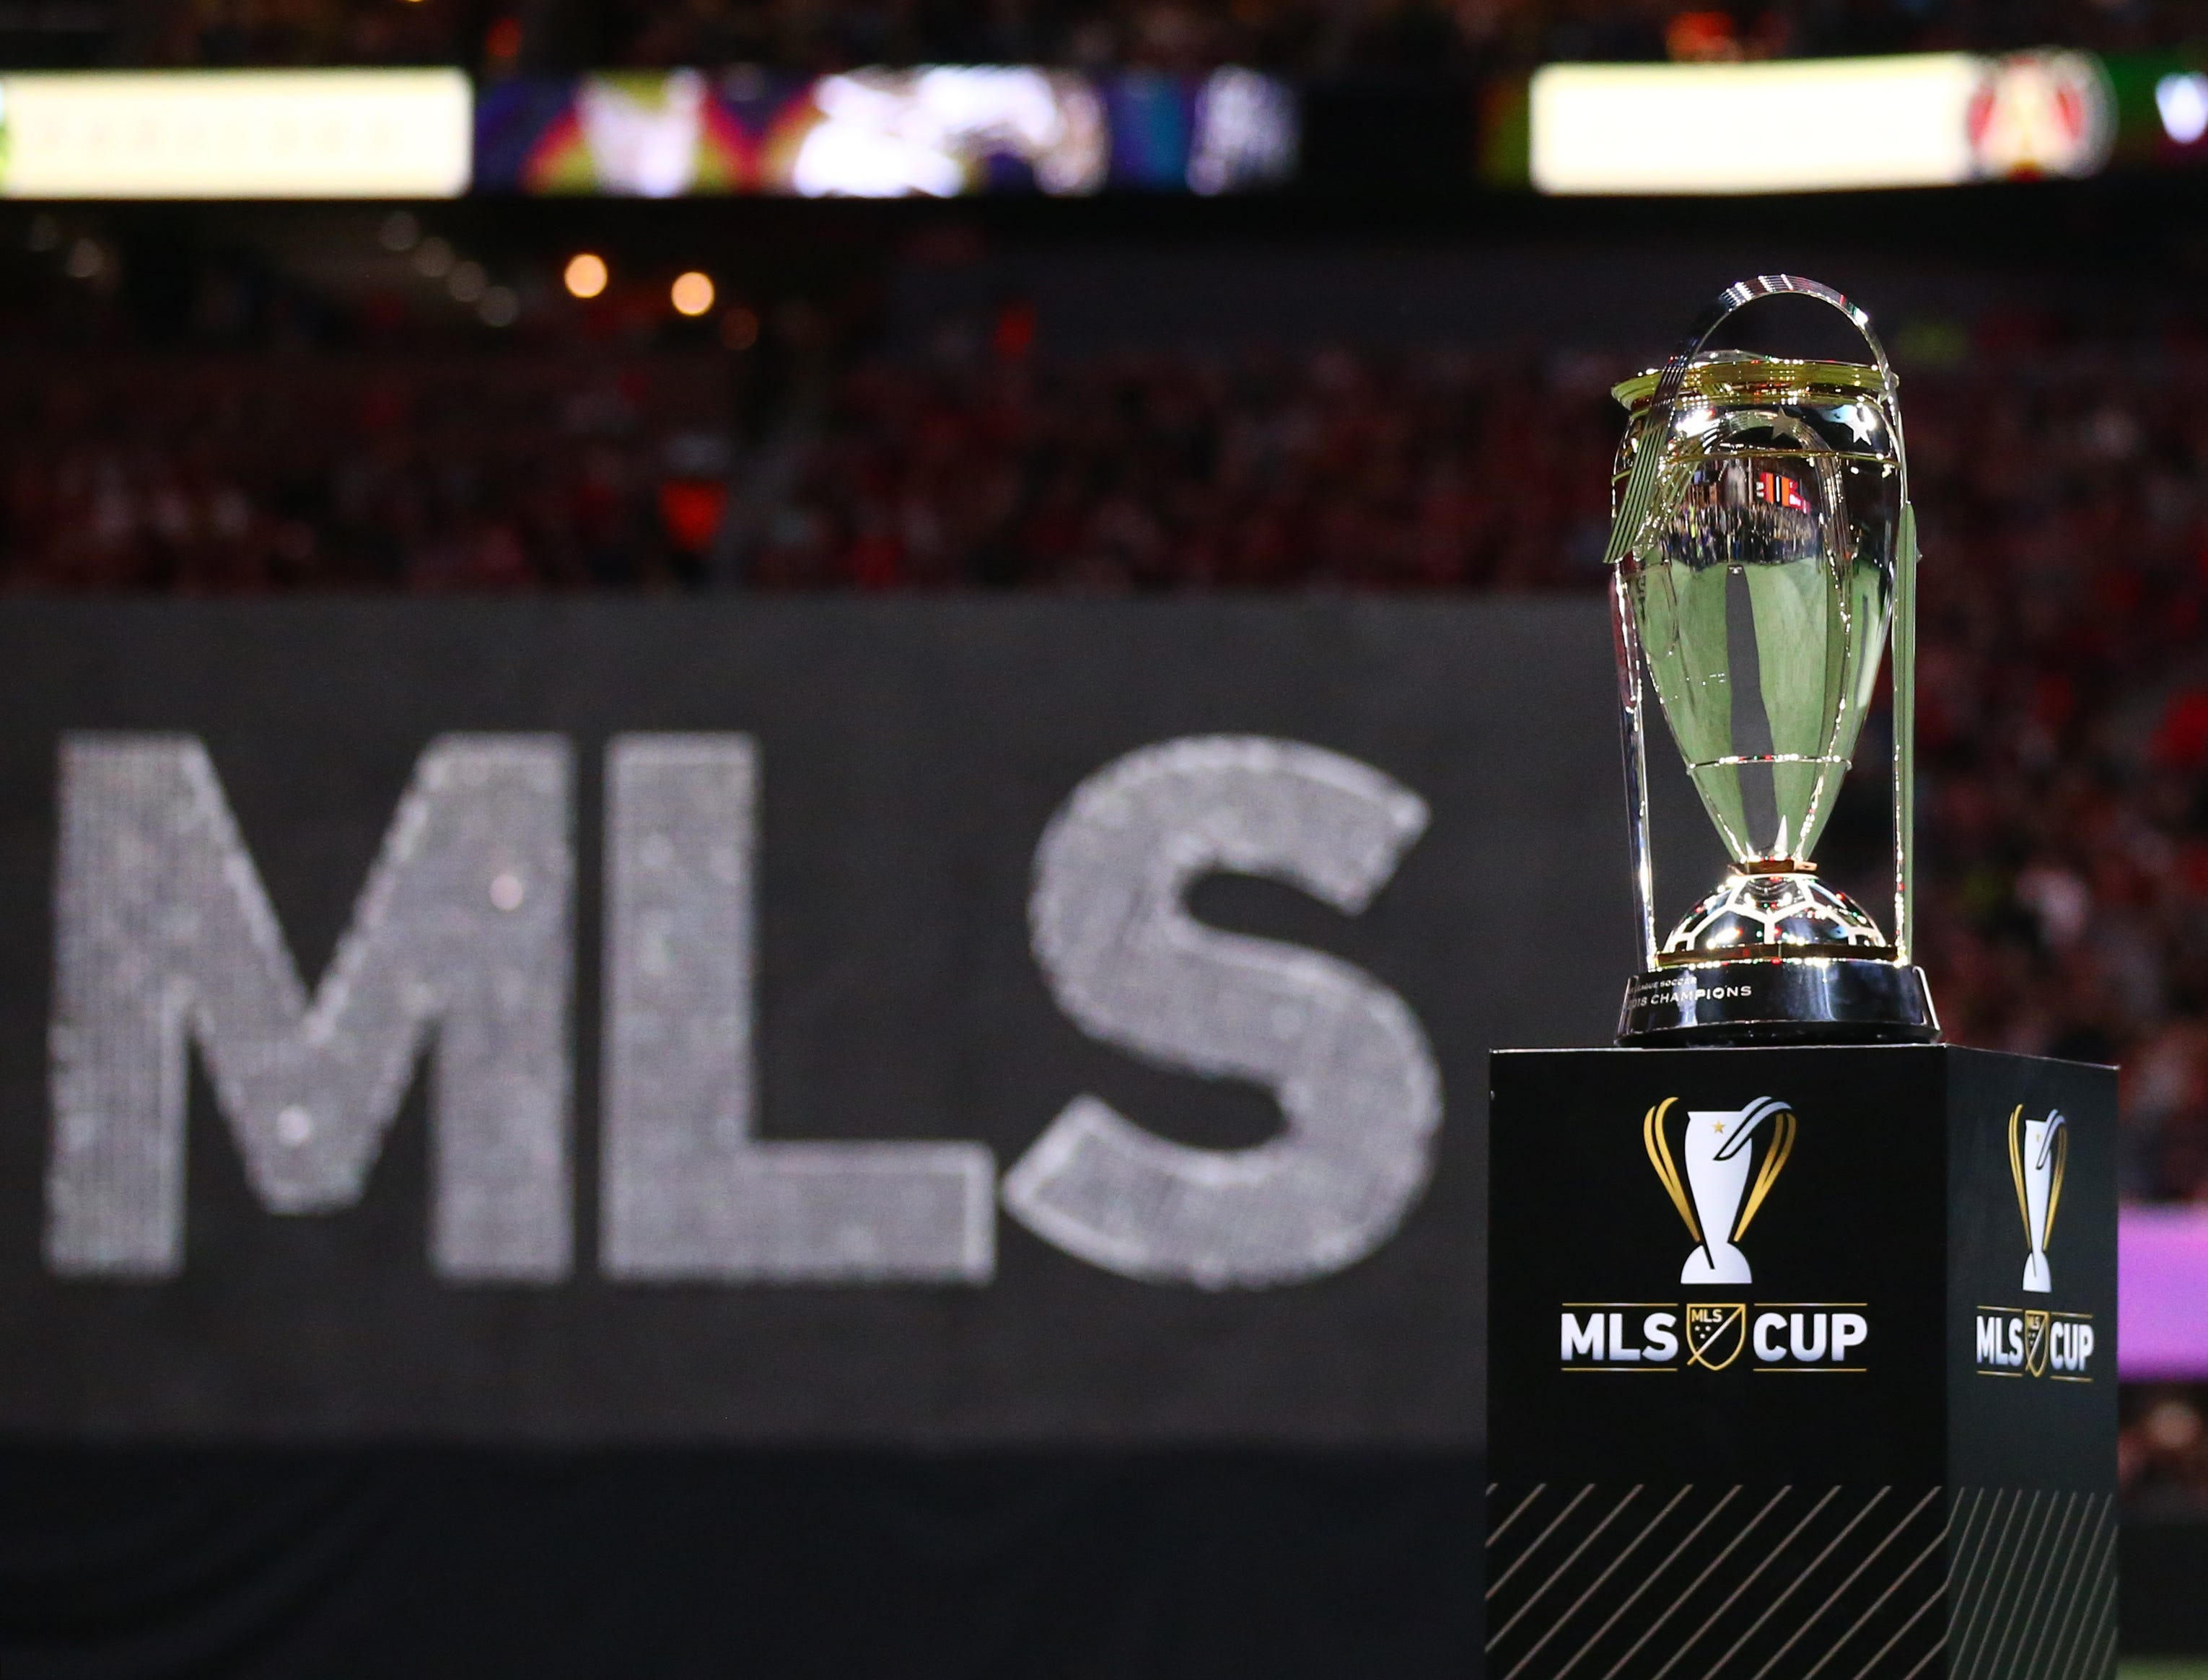 Mls Mls Cup Portland Timbers Vs Atlanta United Fc